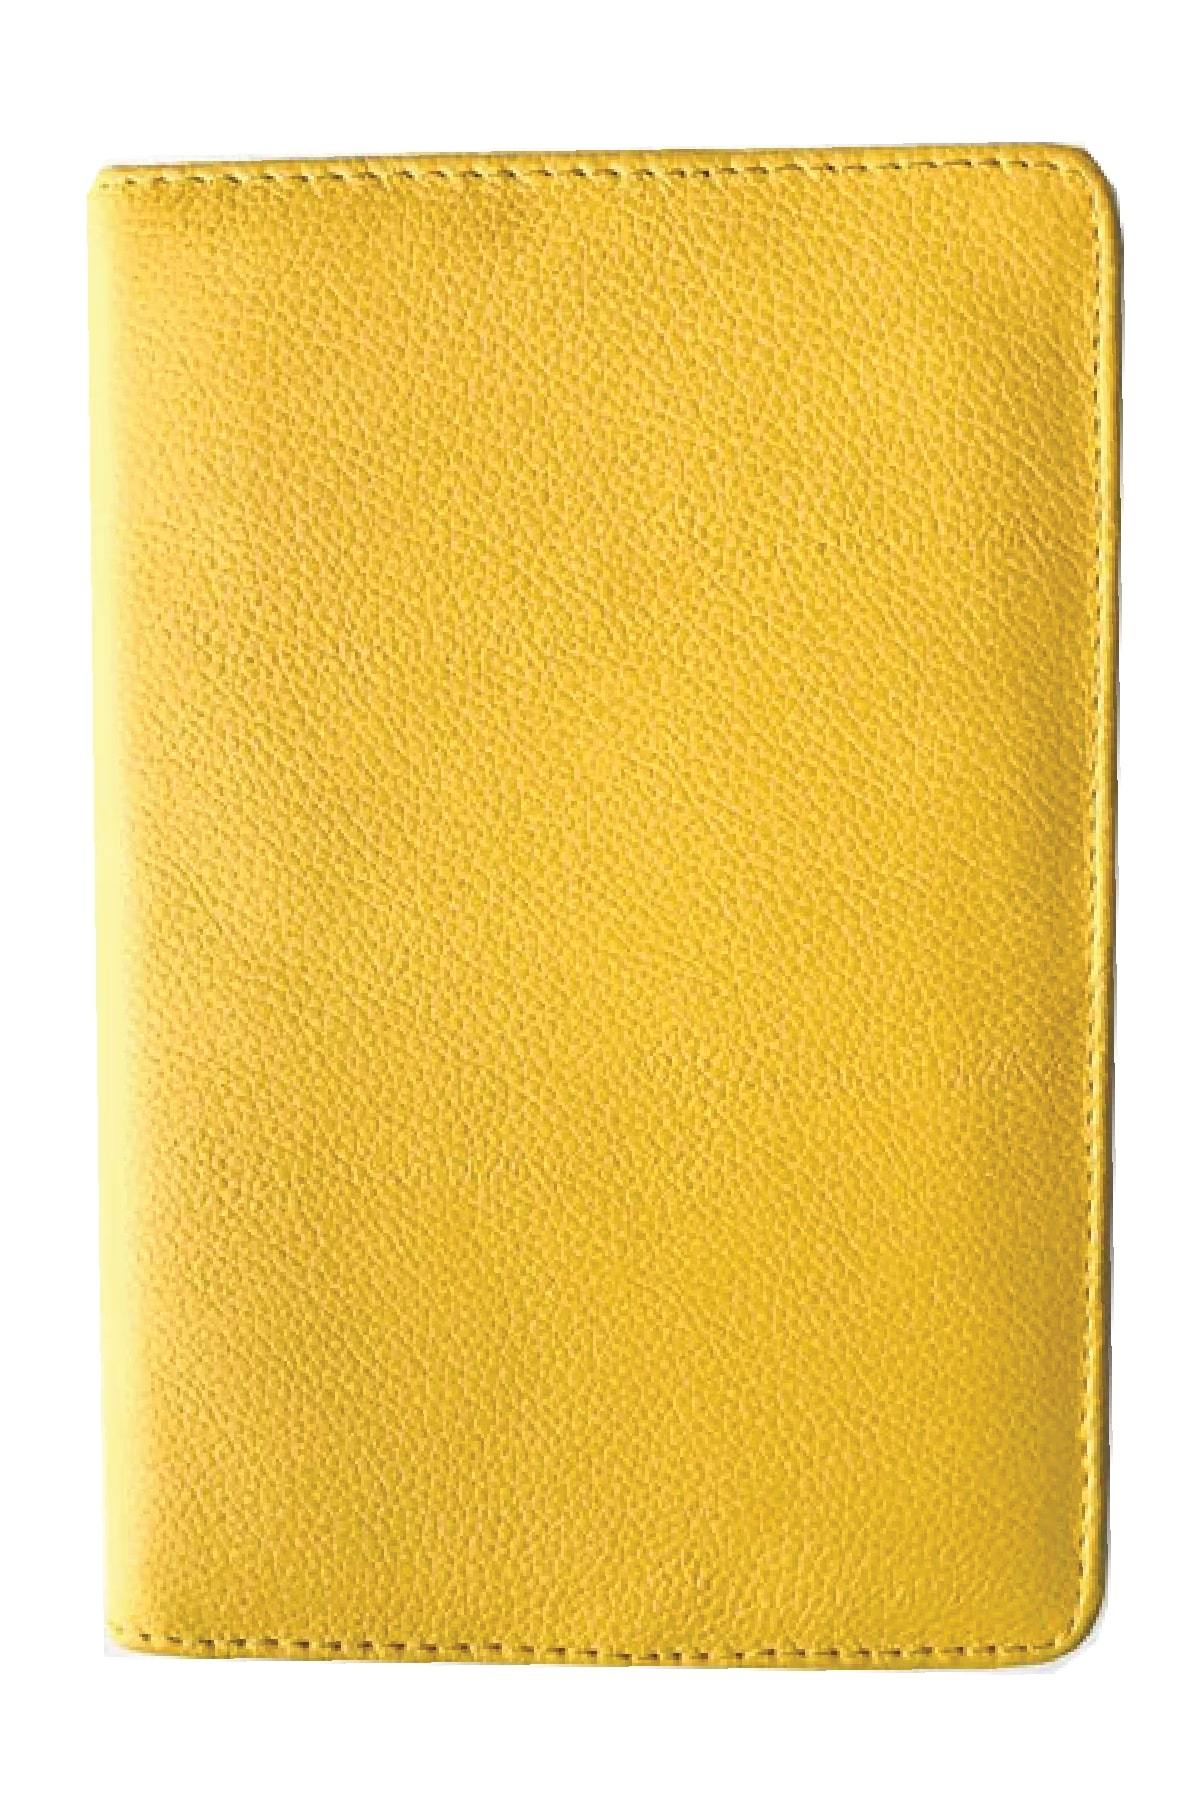 paper-sunday-Leather Journal: Yellow-christian-personalized-scripture-Leather Journal-bible-verses-about-love-faith-hope